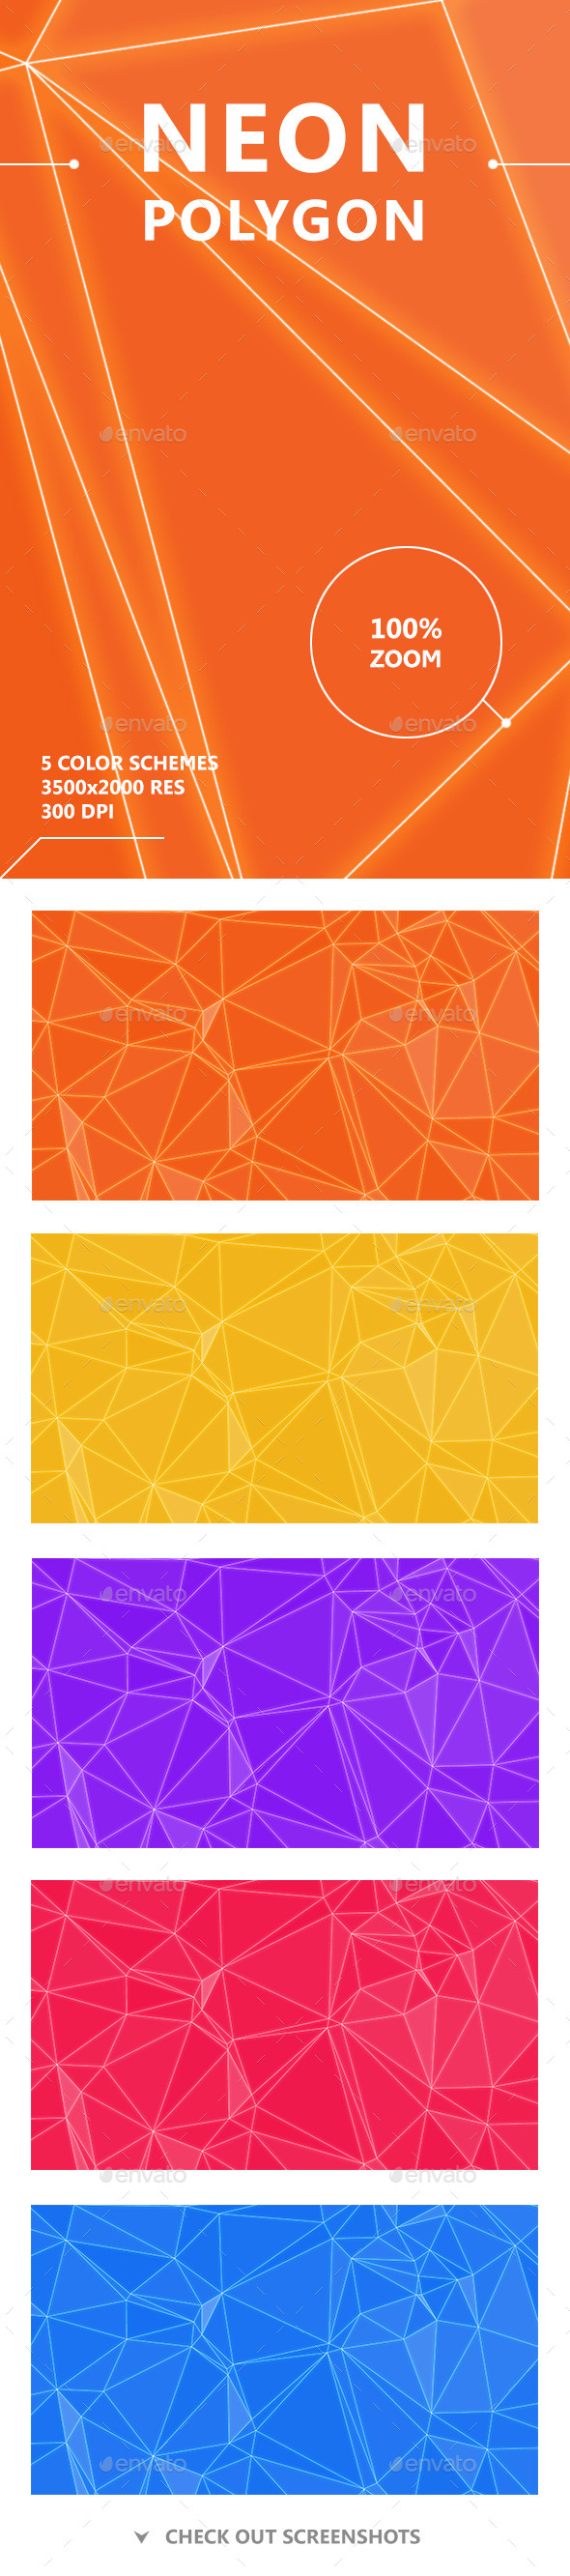 Neon Polygon Backgrounds